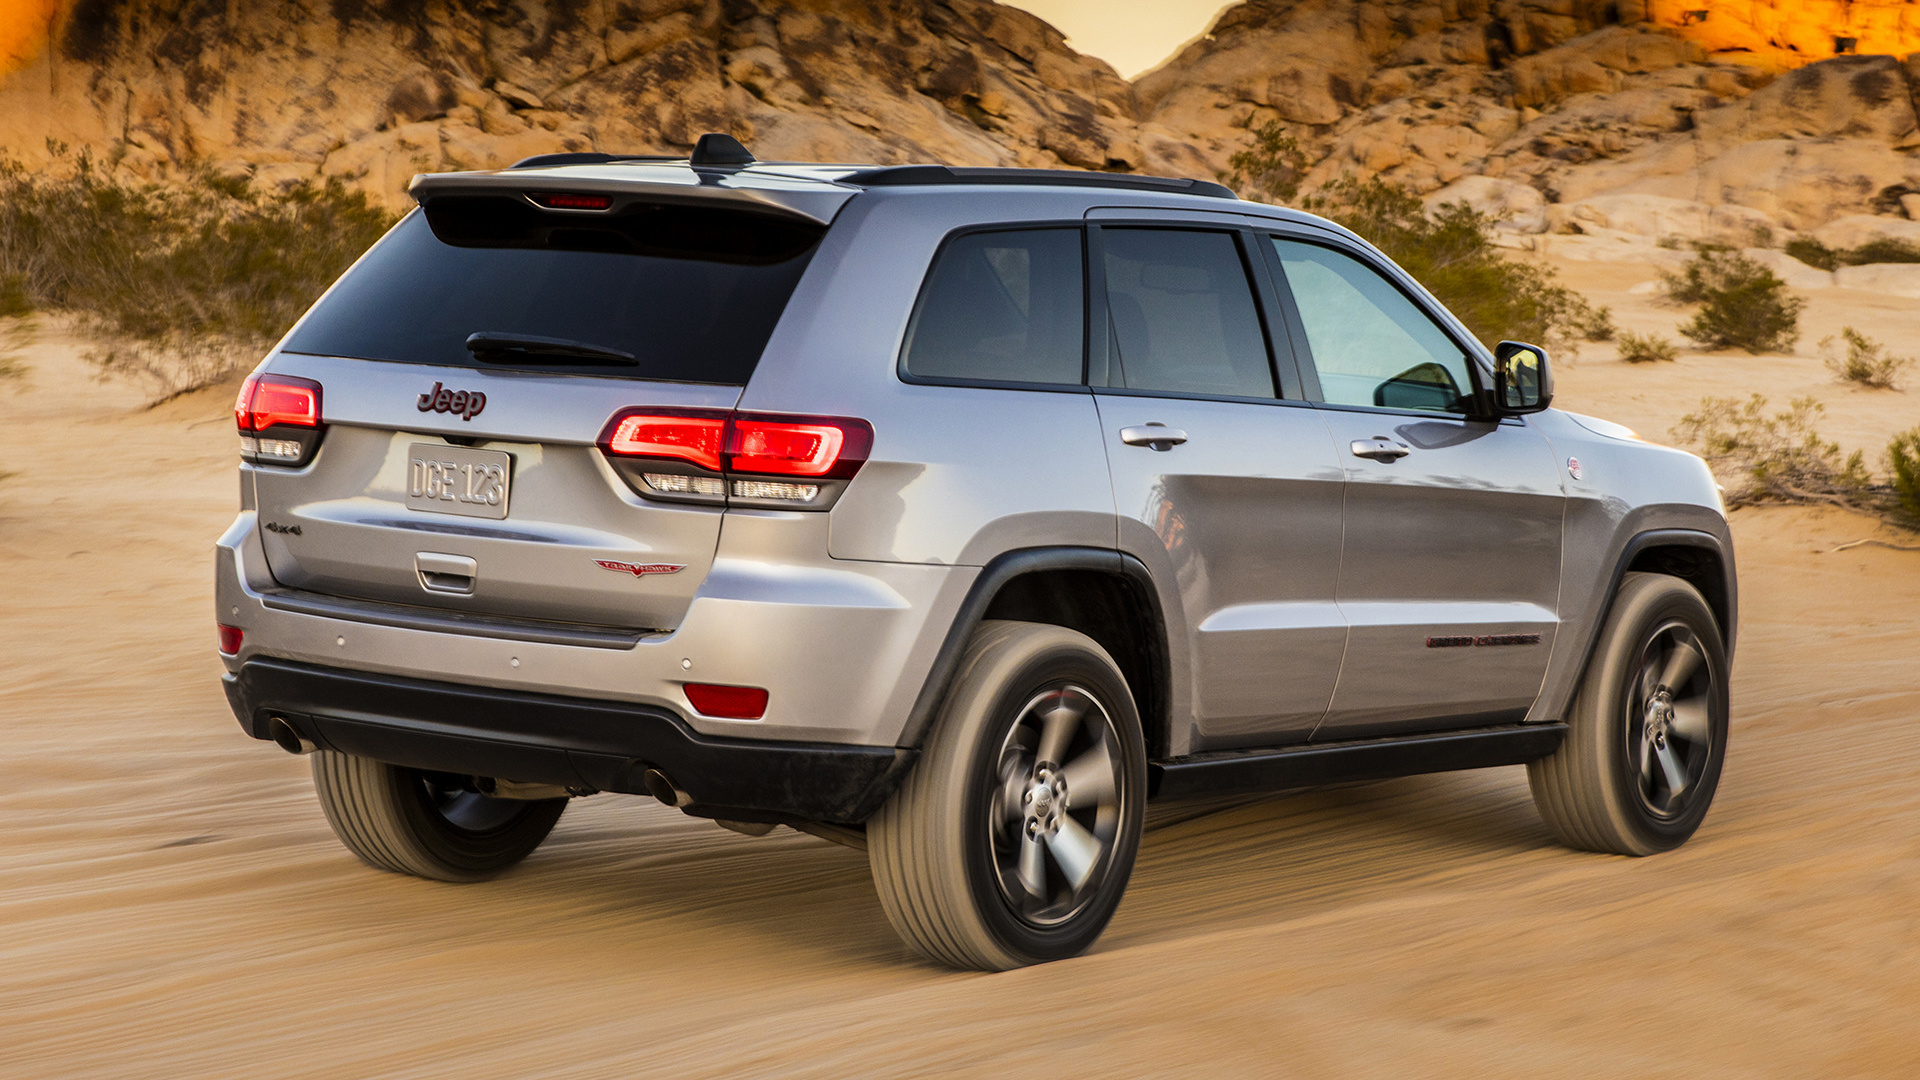 Jeep grand cherokee trailhawk desktop wallpaper hd car wallpapers - Jeep Grand Cherokee Trailhawk 2017 Wallpapers And Hd